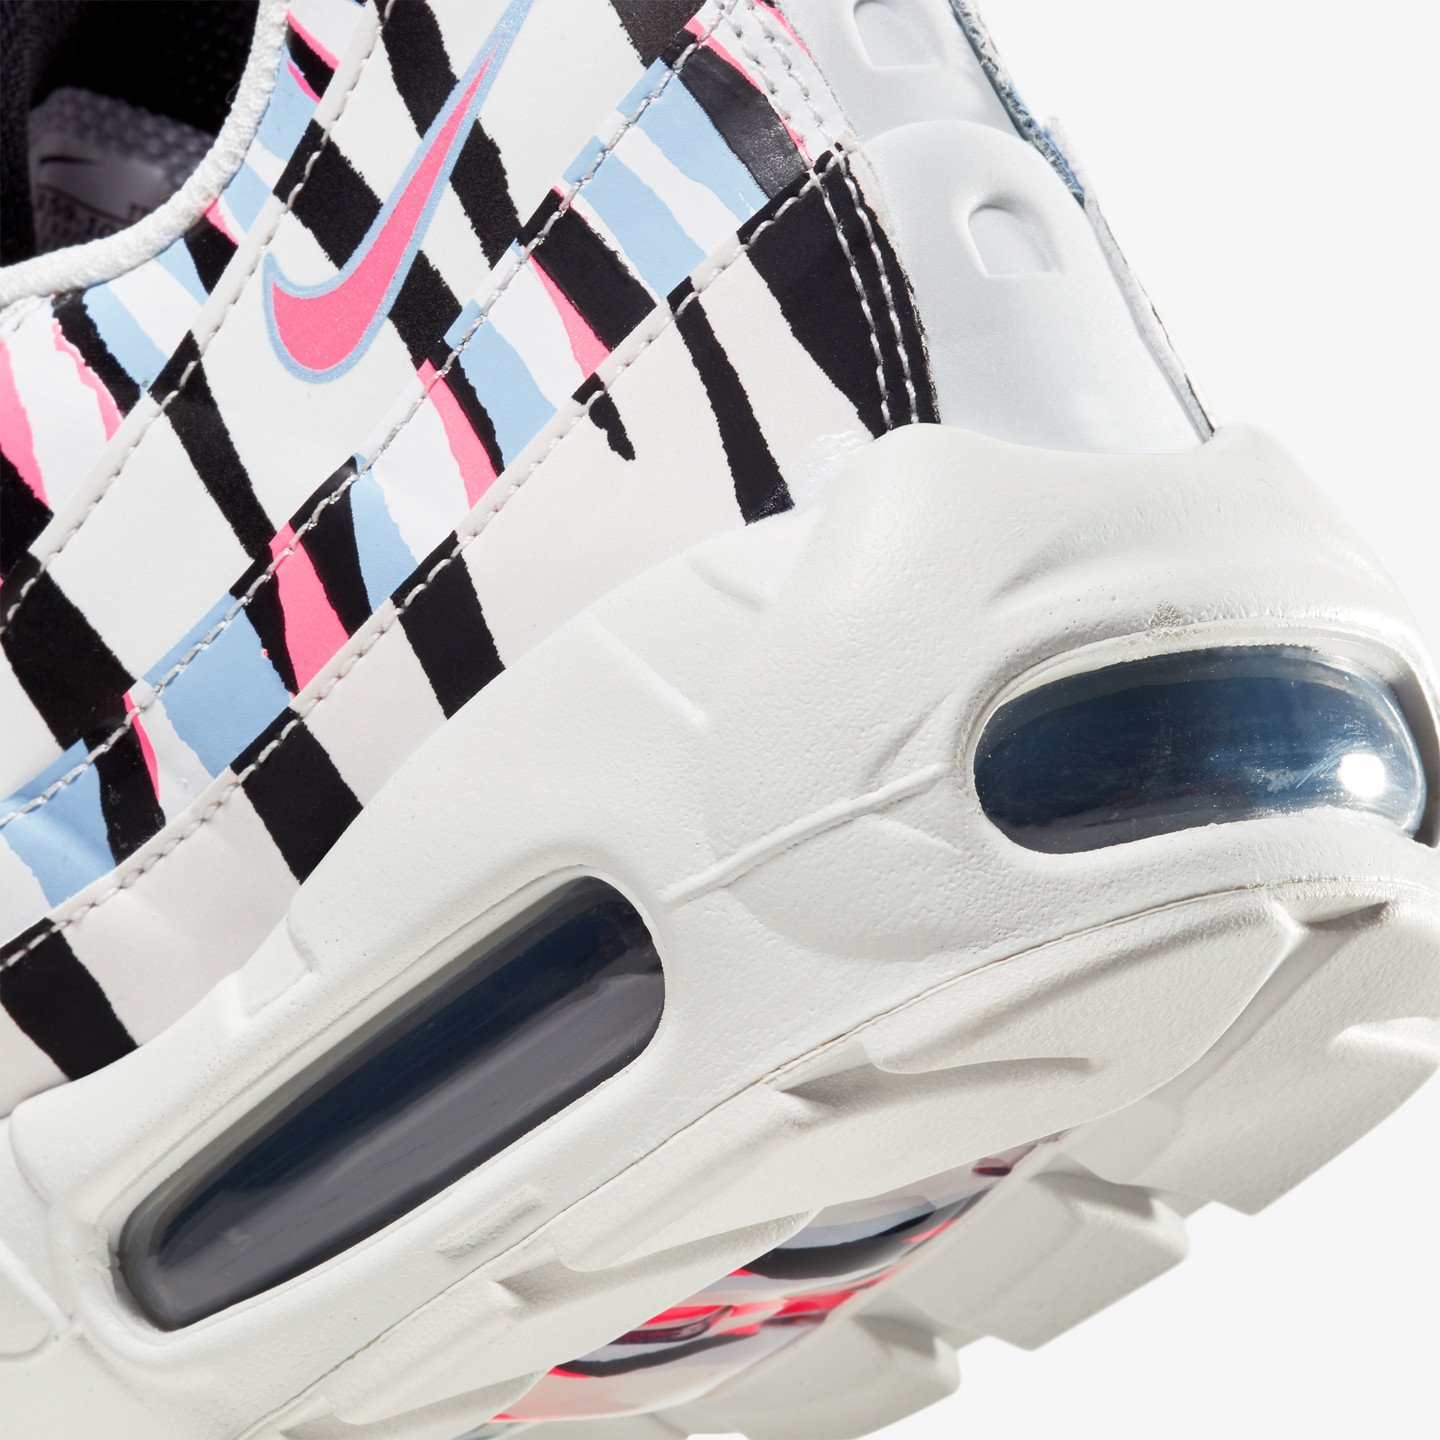 Nike Air Max 95 'Korea' White / Royal Tint / Racer Pink / Black CW2359-100